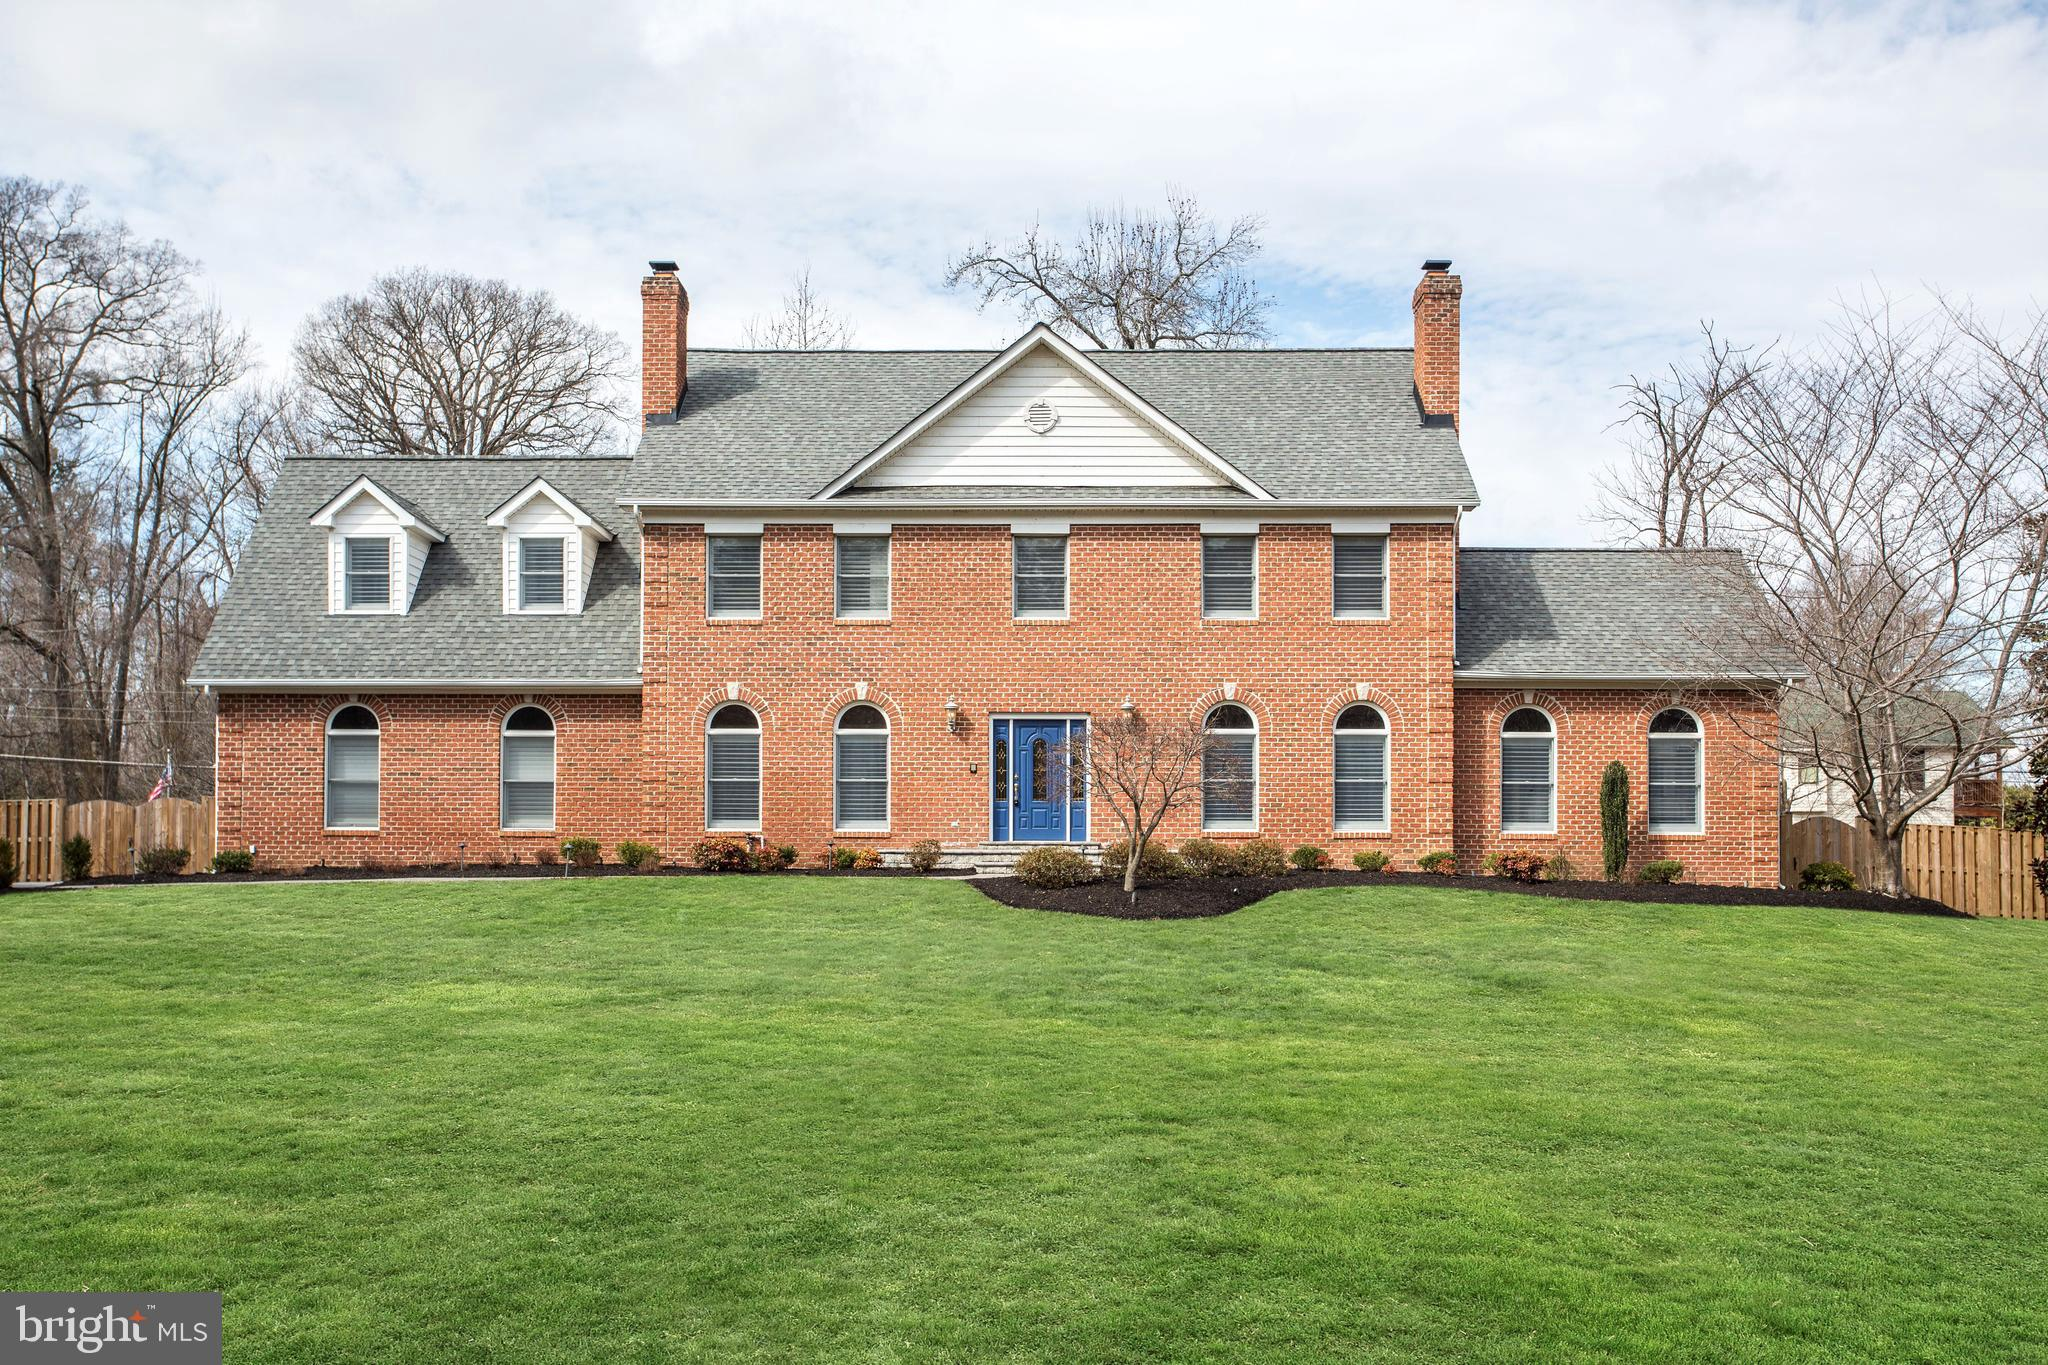 Stately custom-built Georgian brick only a block from the Potomac River Nearly one acre fenced level lot in the desirable Mason Neck waterfront community of Gunston Manor. Spectacular sweeping river views, private sandy beach, boat dock and rec facilities are just a few of the amenities available. Among the numerous interior updates are the stylish kitchen featuring Carrara marble counters and glass/ marble back splash, newer appliances, updated lighting and fixtures. The main level of this home home features formal living and dining rooms; family room; hardwood floors; new carpet. The second level offers a luxury master suite with 3-sided fireplace and spa style remodeled bath and 3 additional bedrooms. There are 4 fireplaces and a fully finished basement with walk -up stairs.New 16KW Generac generator (2019) and new roof (2016) too.Your own private retreat - only 20 miles to DC . Bring your boat!   *HOA Fees optional.  Allows access to beach, dock, boat slips, community center, and basketball court.*